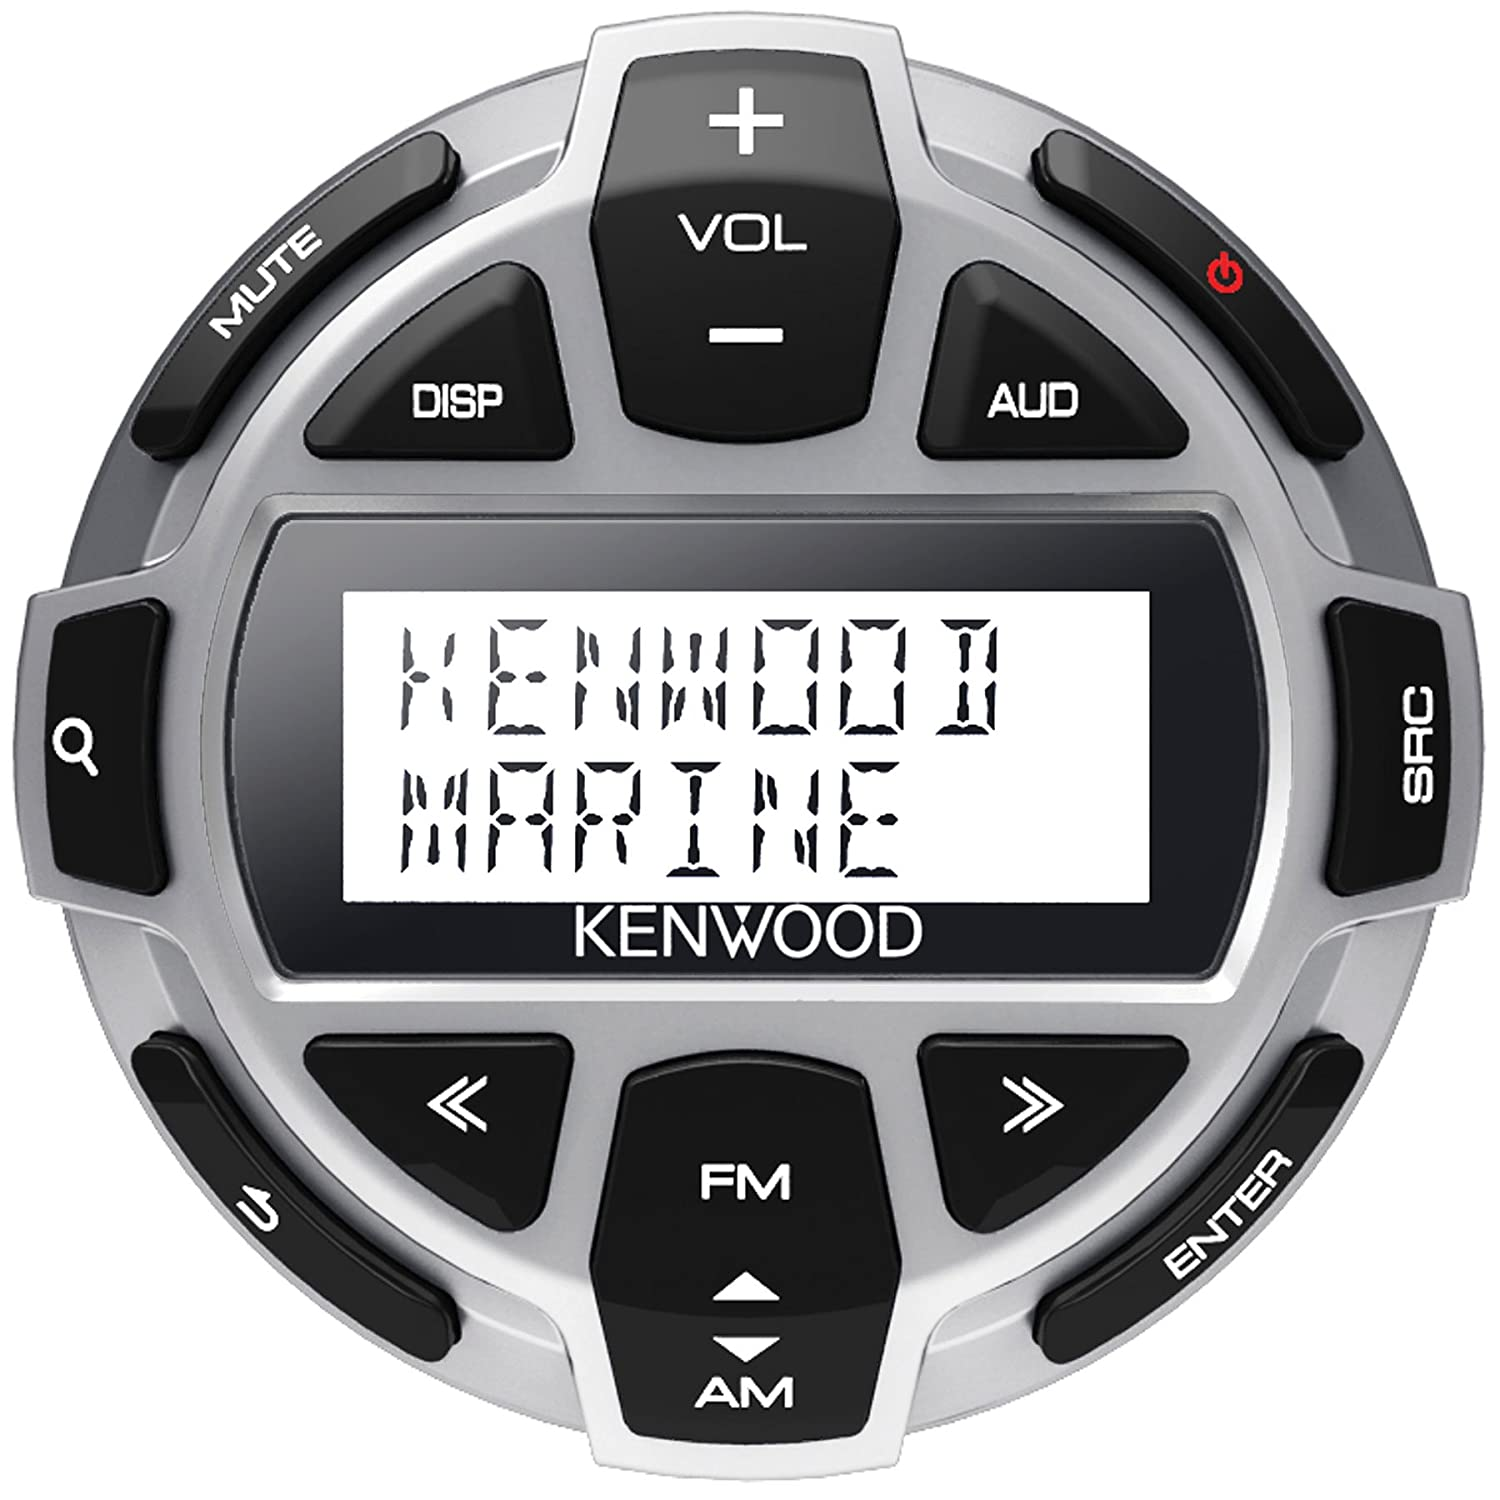 71jDJyp7YVL._SL1500_ amazon com new kenwood kca rc55mr wired marine boat remote to kmr kenwood kmr 350u wiring diagram at gsmx.co